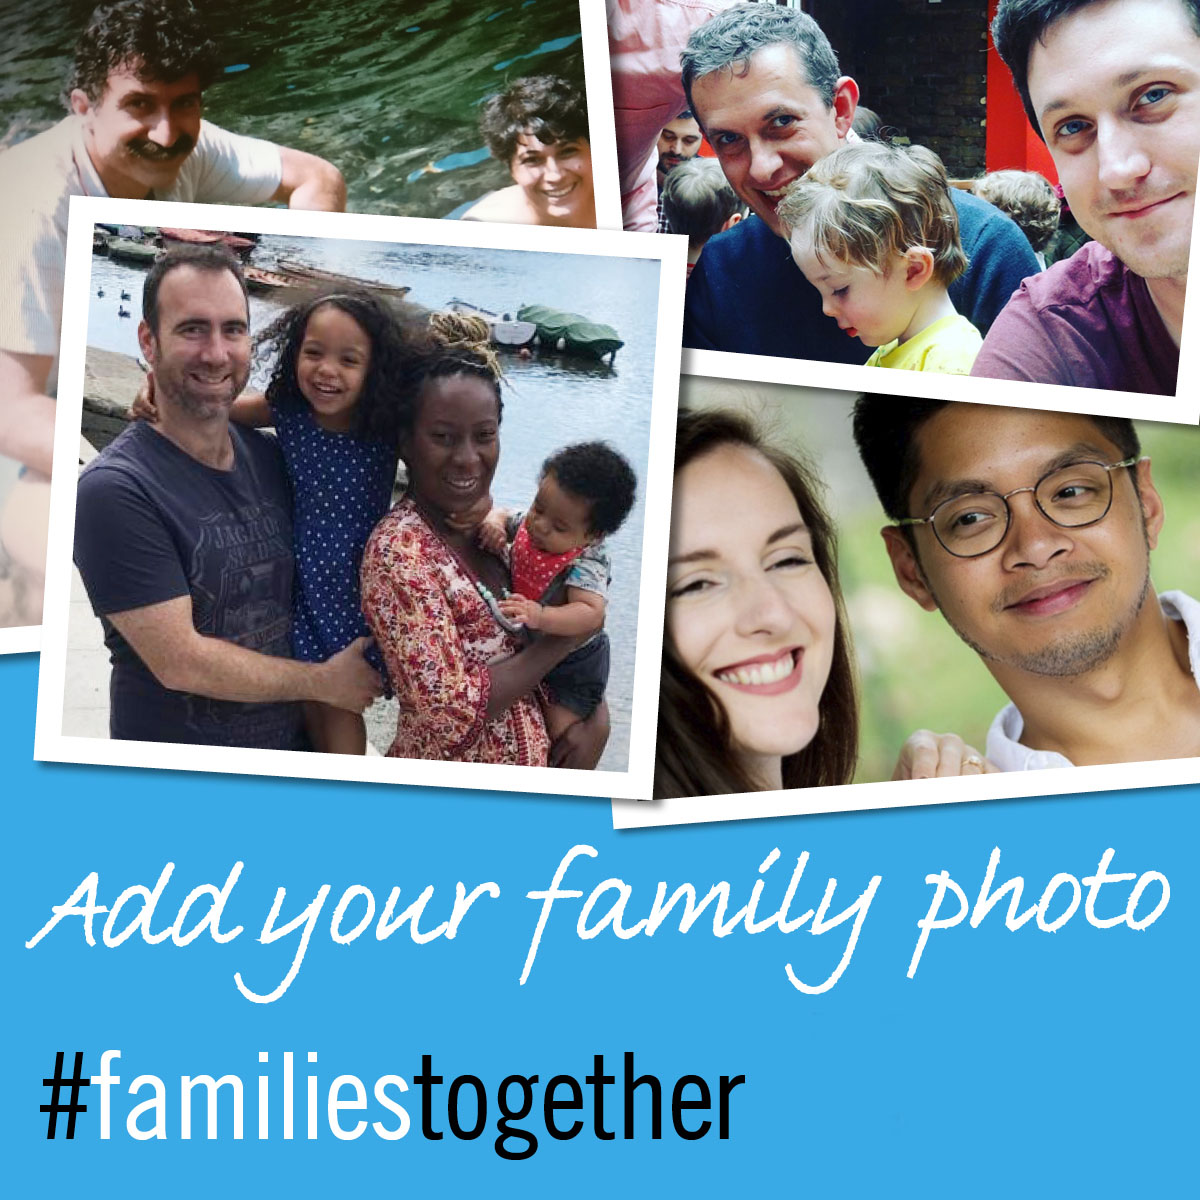 families-together-1200x1200px-homepage.jpg